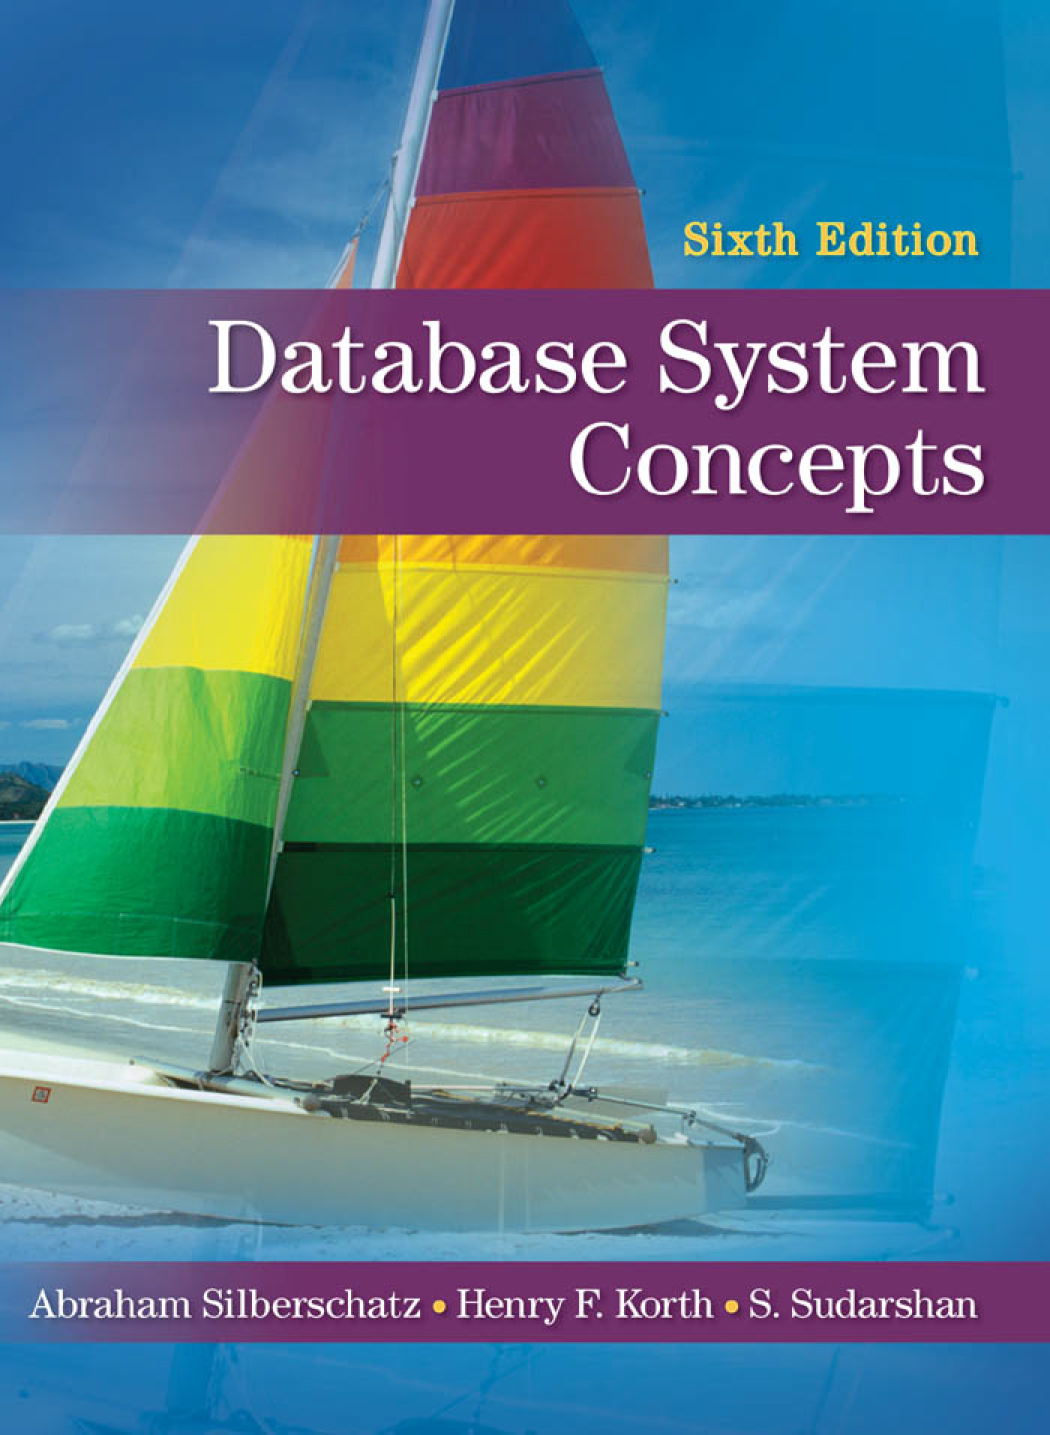 [Book] Database System Concepts 6th Edition by Silberschatz, Korth &  Sudarshan